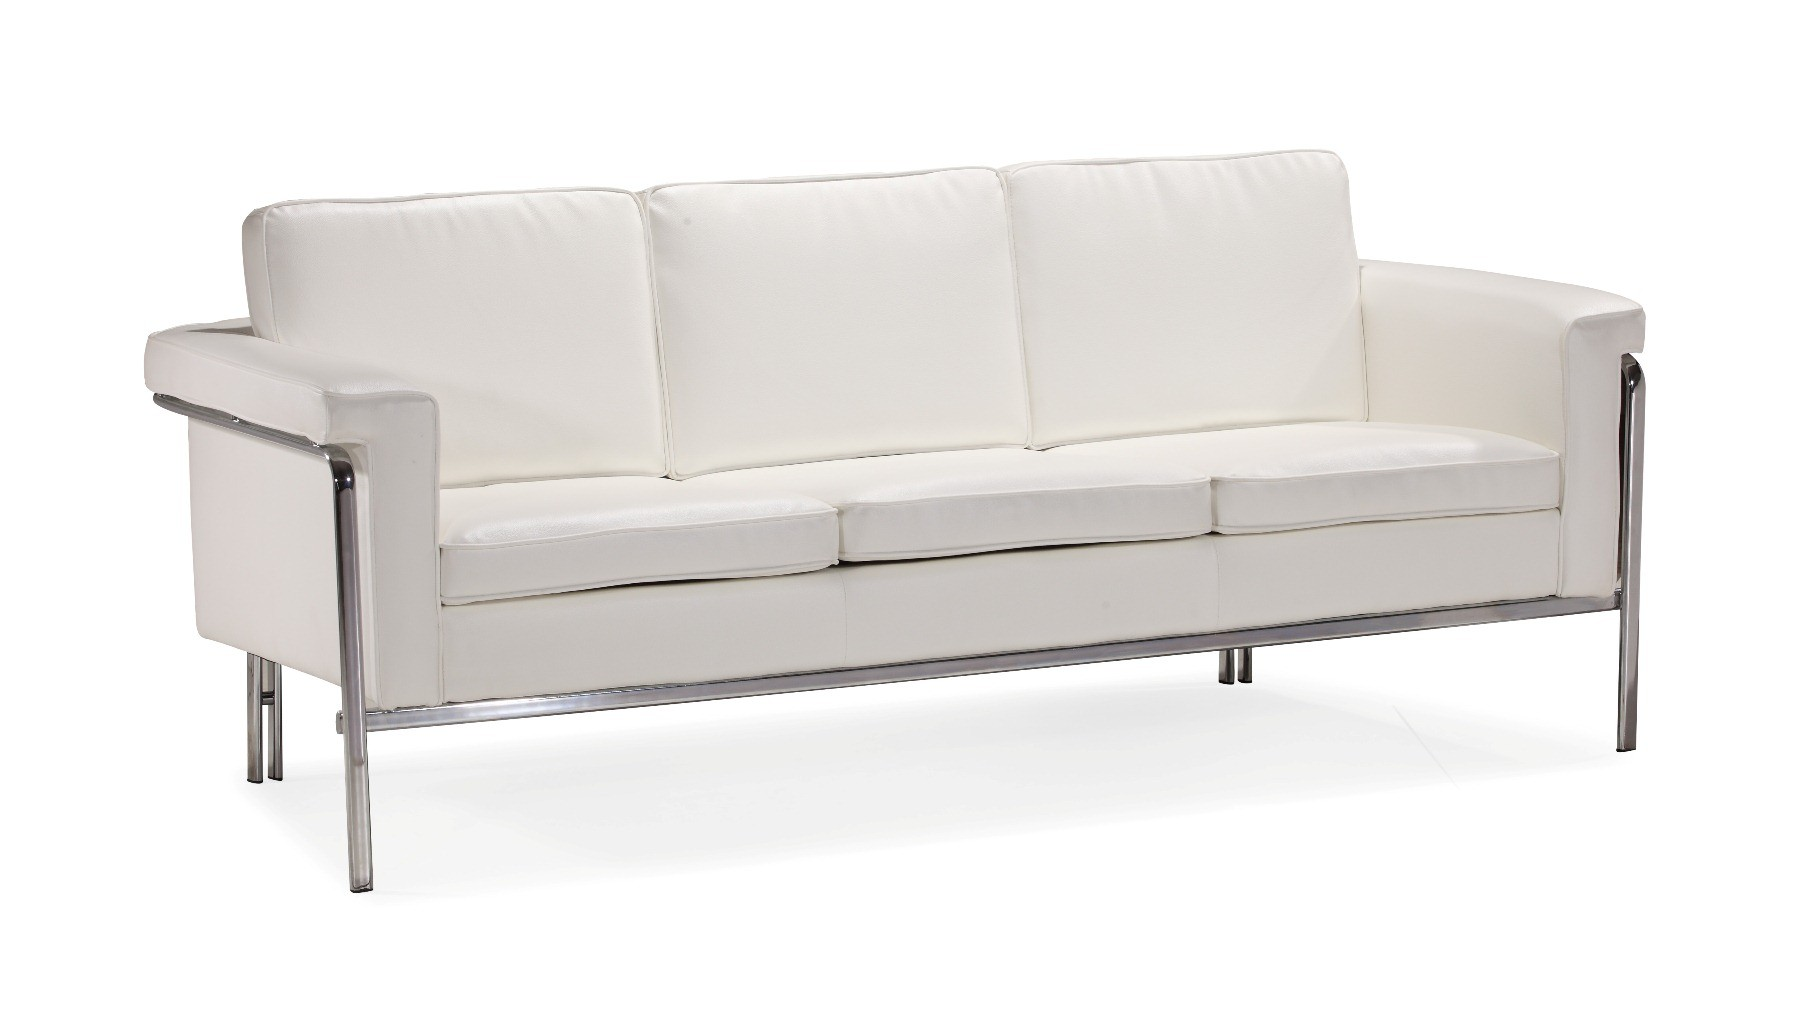 Contemporary Couch White Or Black Leather Contemporary Sofa With Chrome Legs And Frame